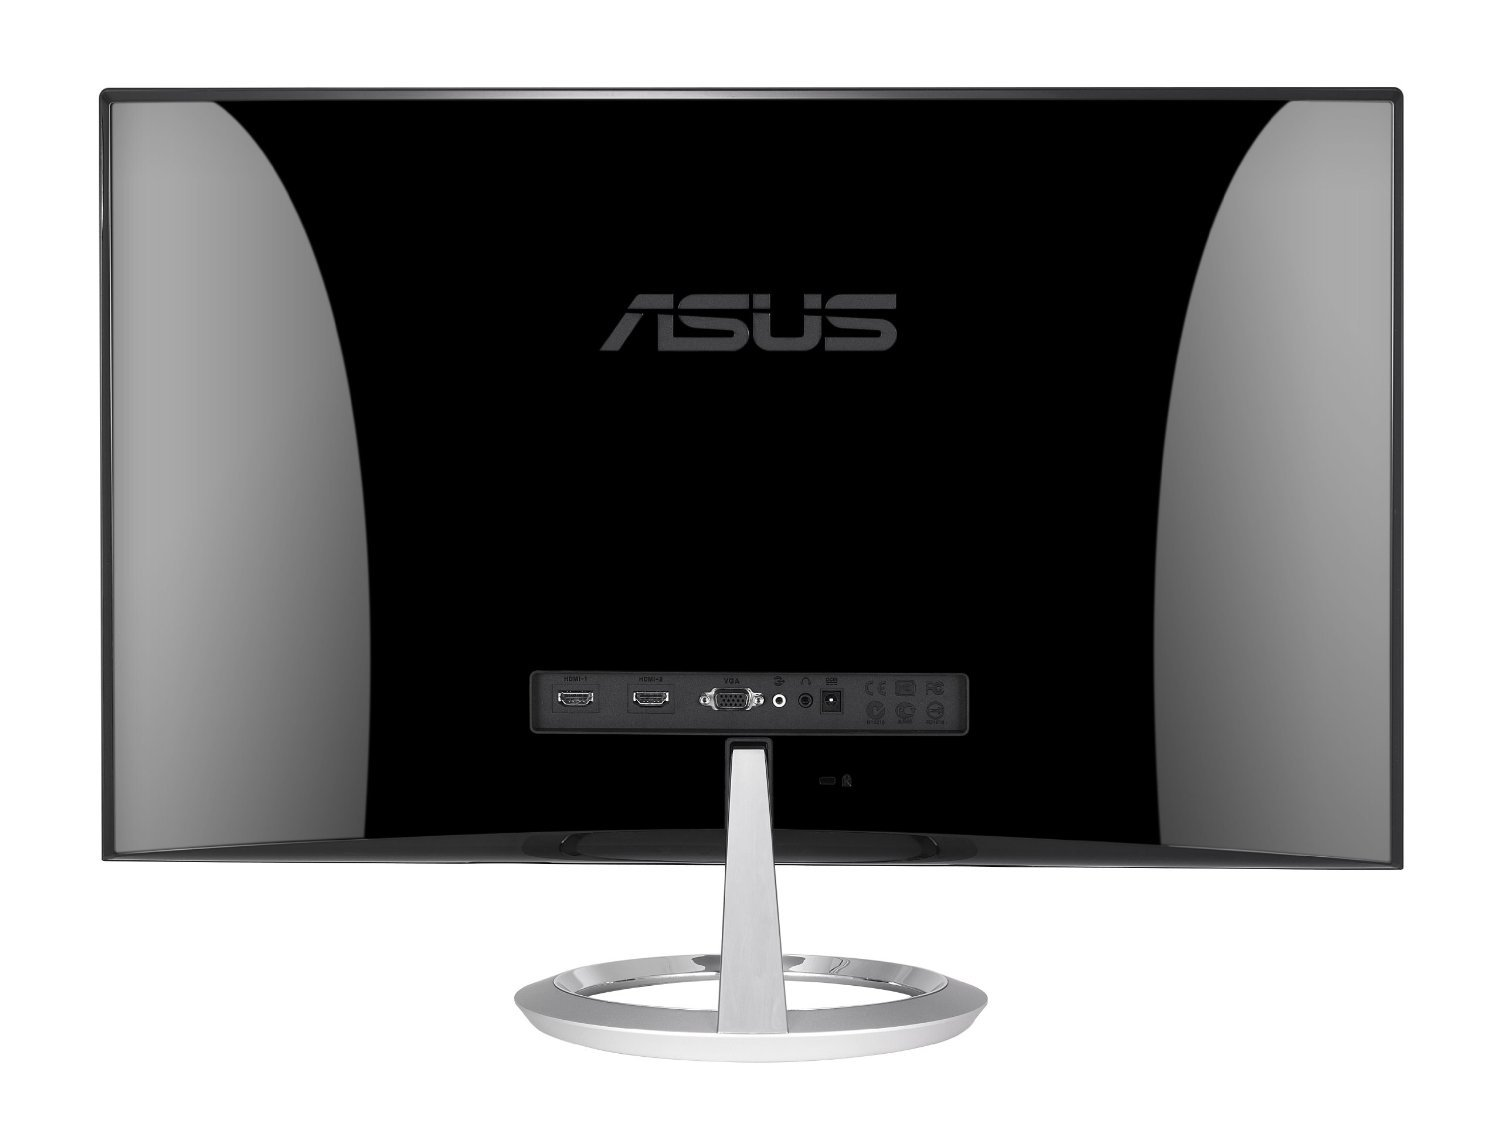 Asus Mx279h 27 Quot Widescreen Led Backlit Lcd Monitor Silver